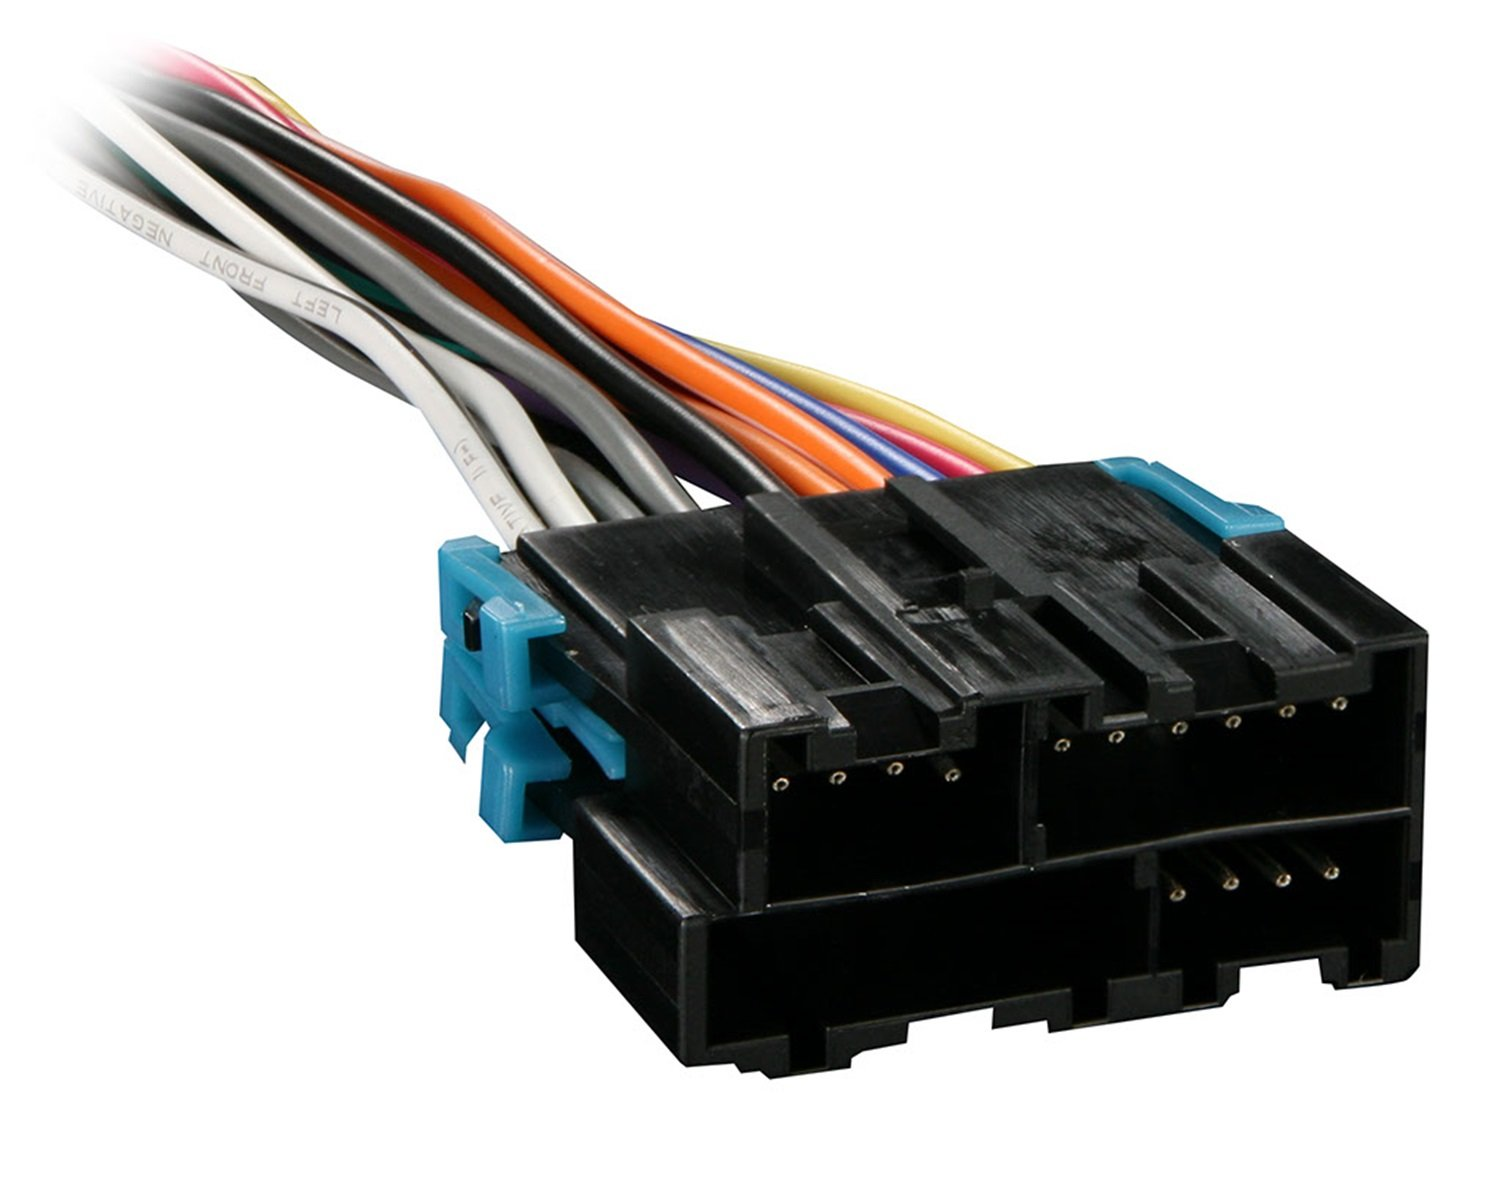 61 CwjZt1hL._SL1500_ radio wiring harnesses amazon com how much does it cost to replace a wiring harness at bakdesigns.co